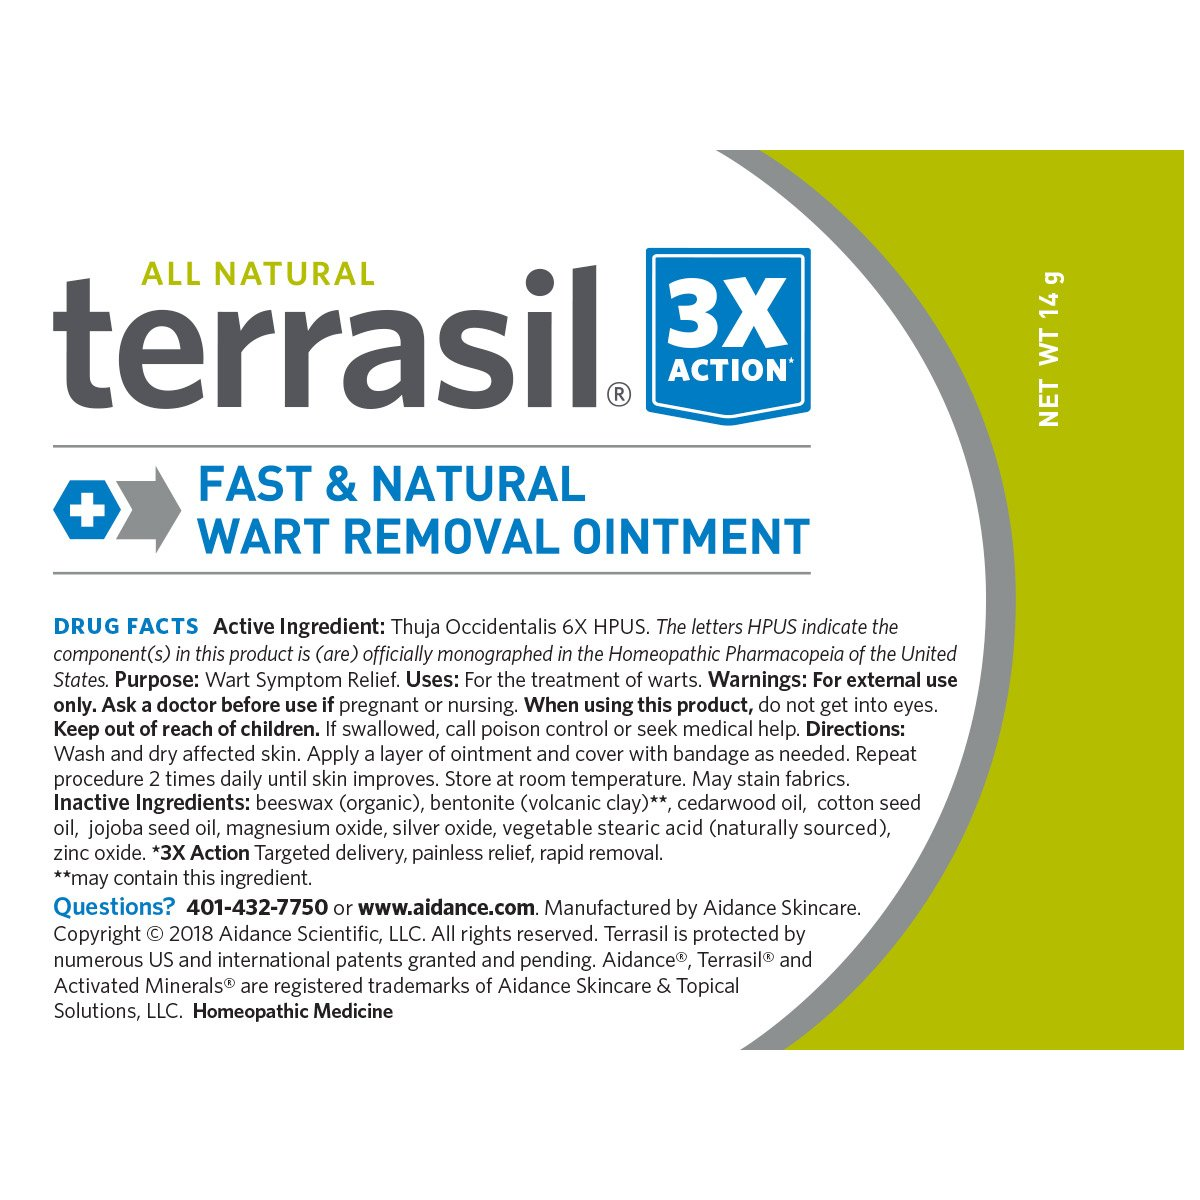 Wart Remover - Safe for Sensitive Skin Dr Recommended 100% Guaranteed All Natural Pain Free Salicylic Acid Free Patented Treatment for Plantar Genital Facial Warts by Terrasil by Aidance Skincare & Topical Solutions (Image #5)